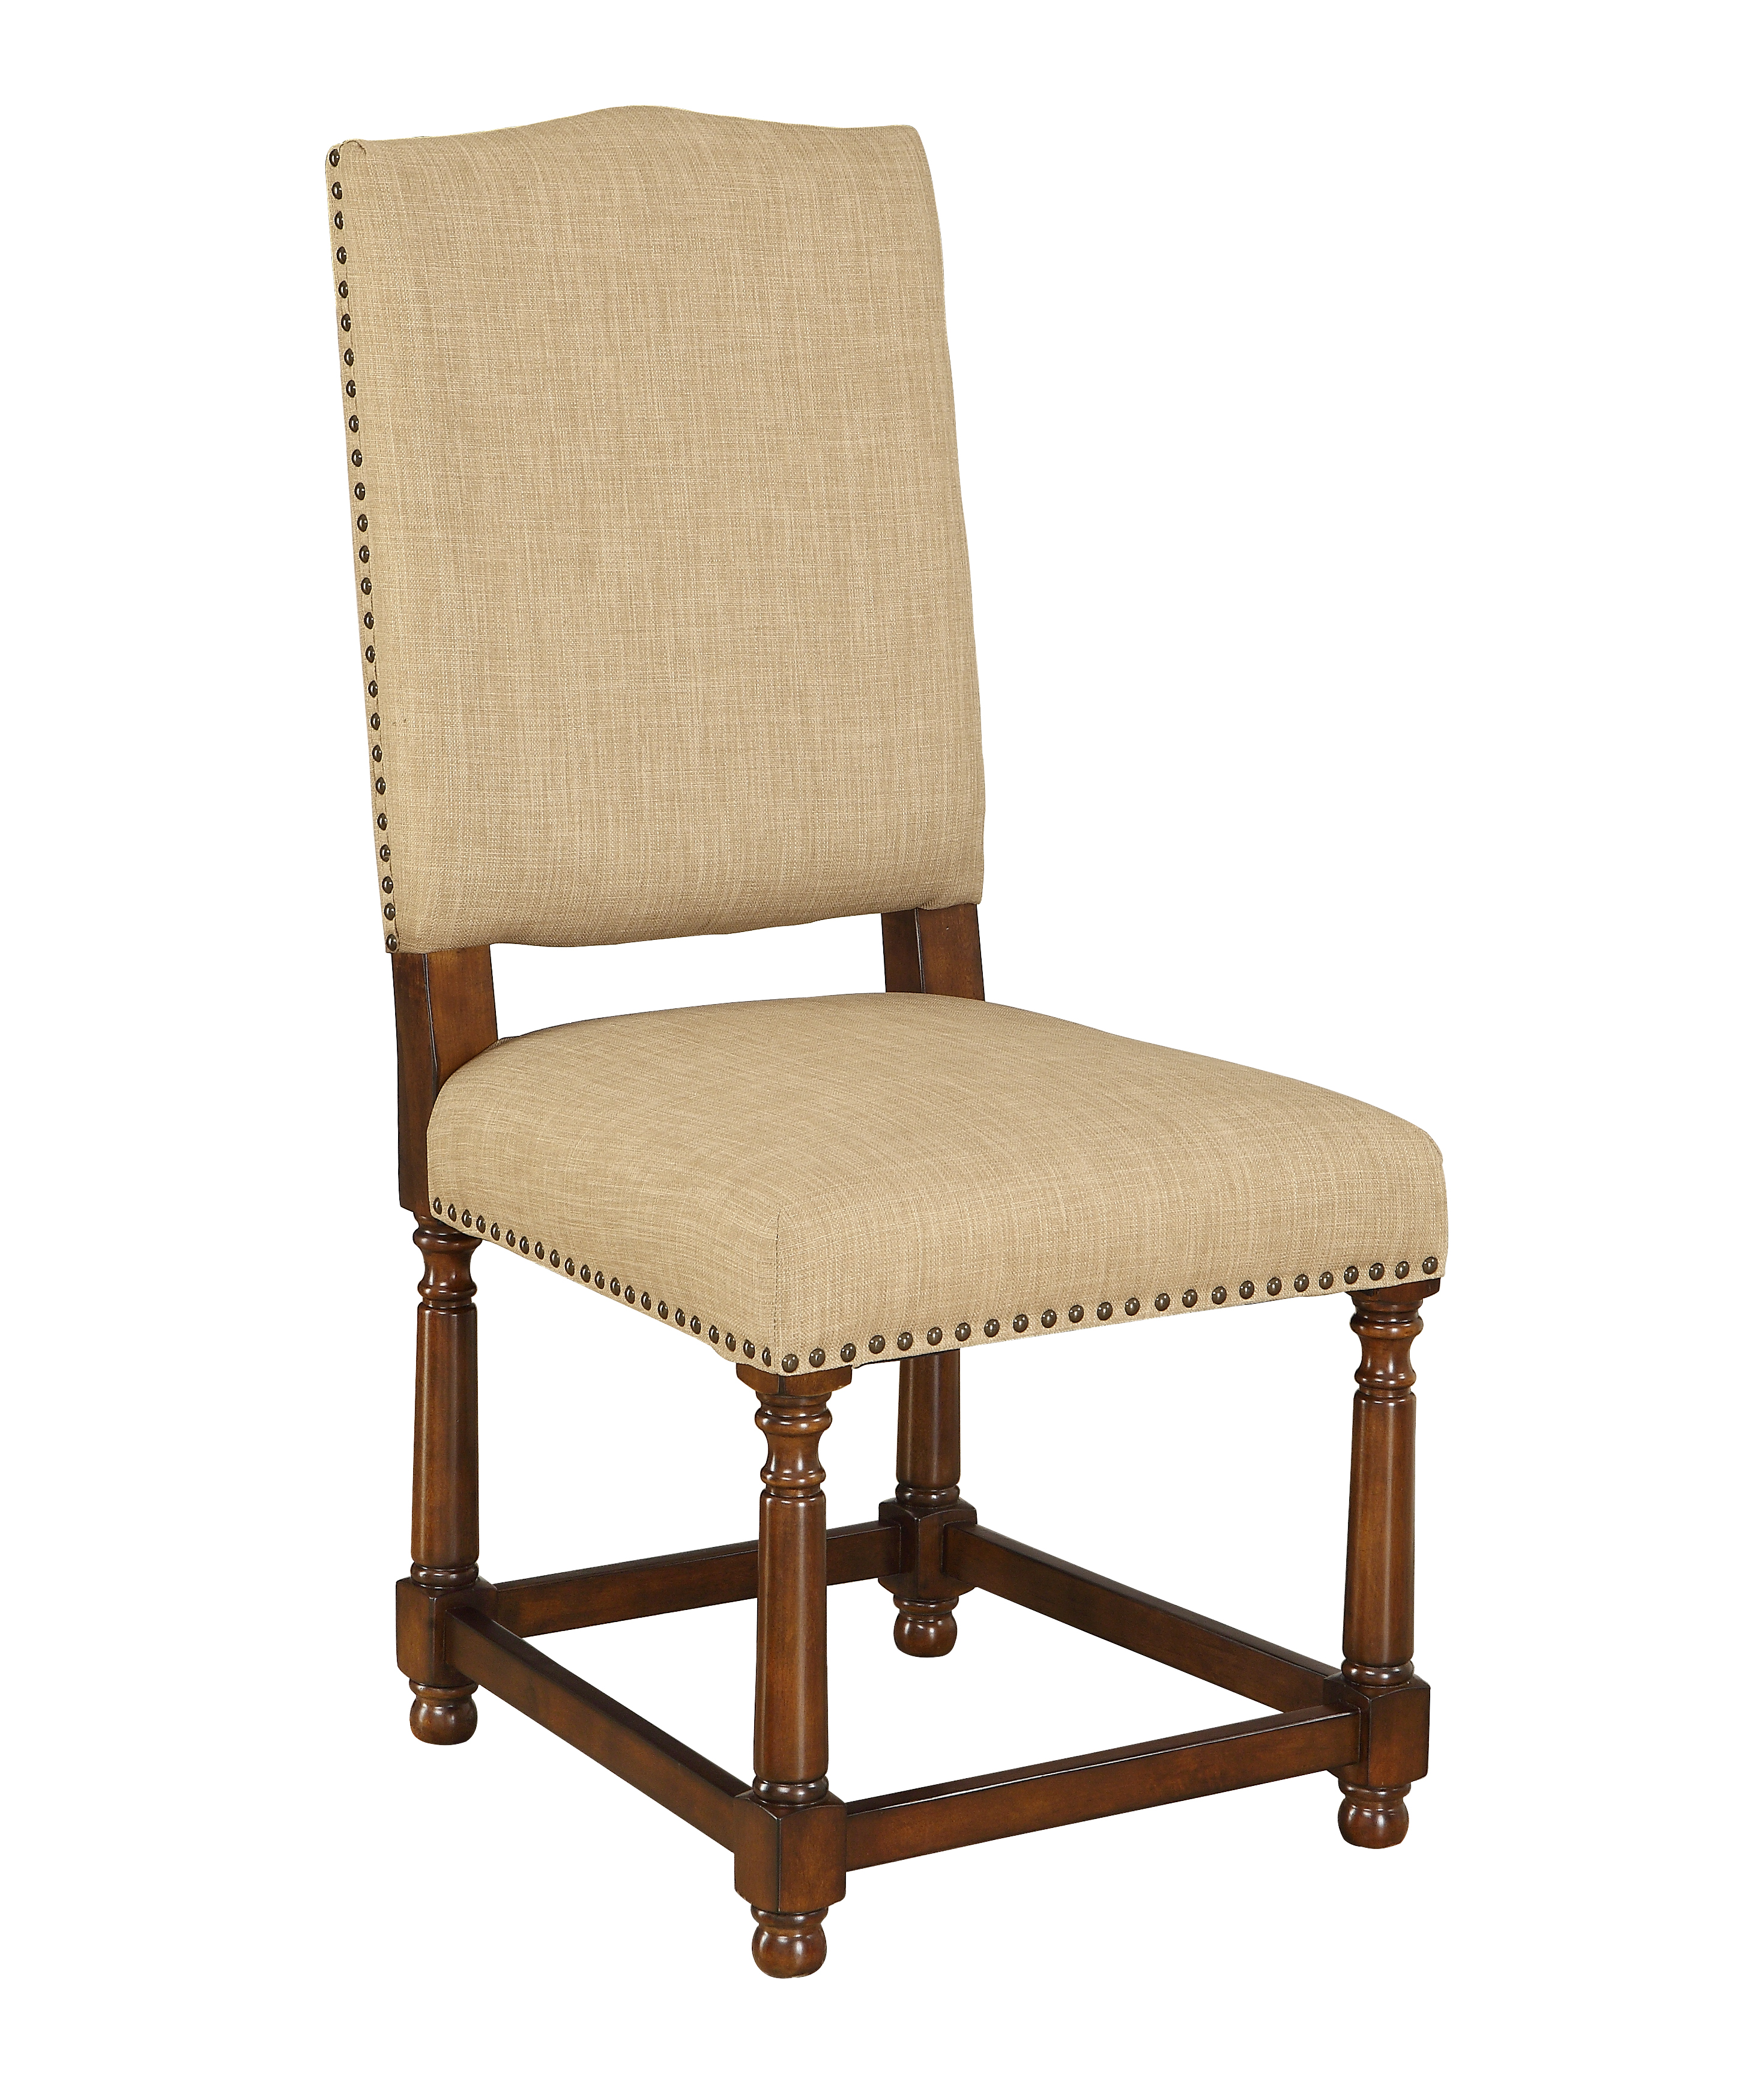 Coast to Coast Imports Coast to Coast Accents Dining Chair - Item Number: 78628